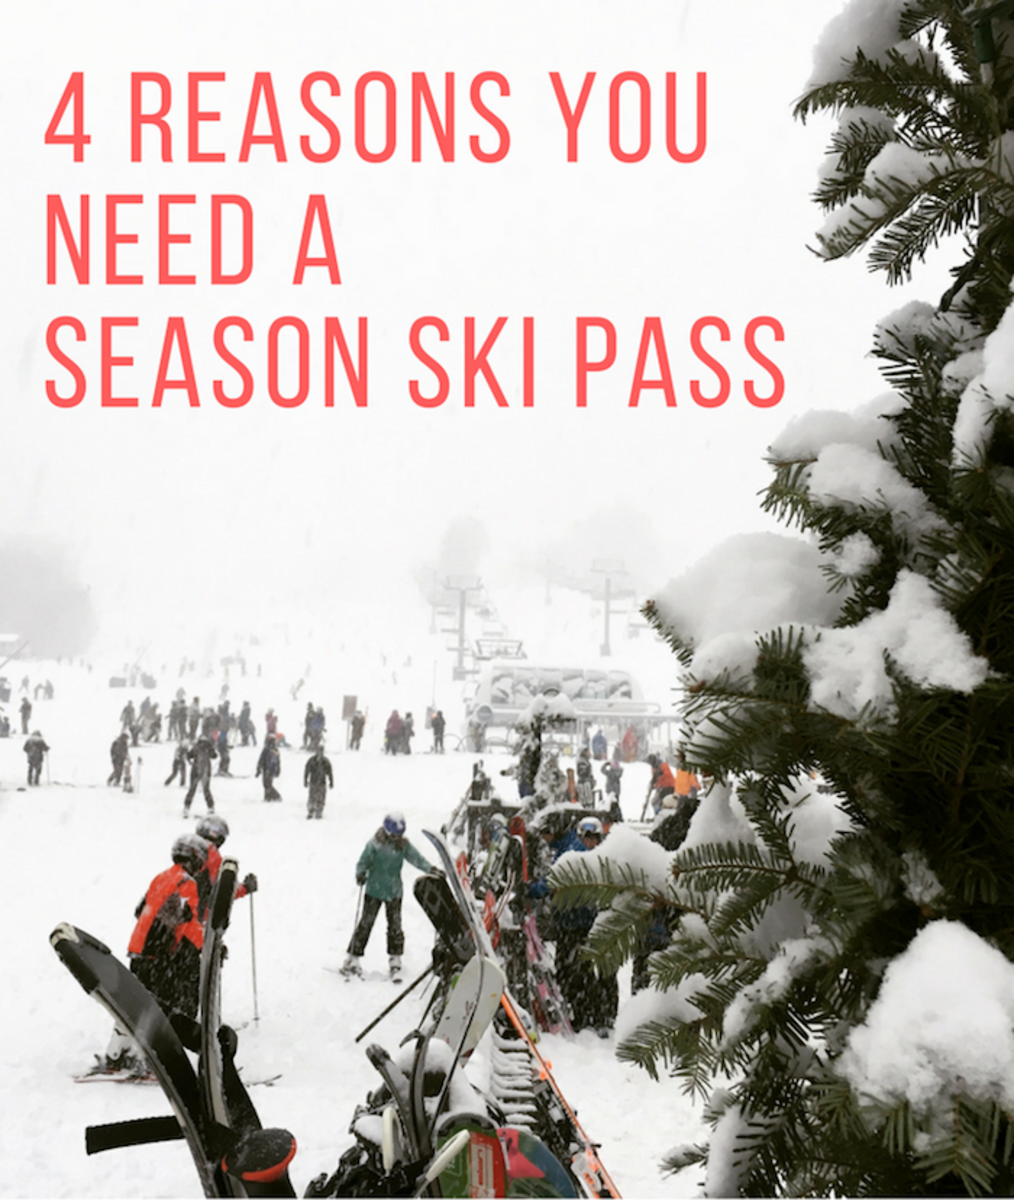 reasons you need a season ski pass